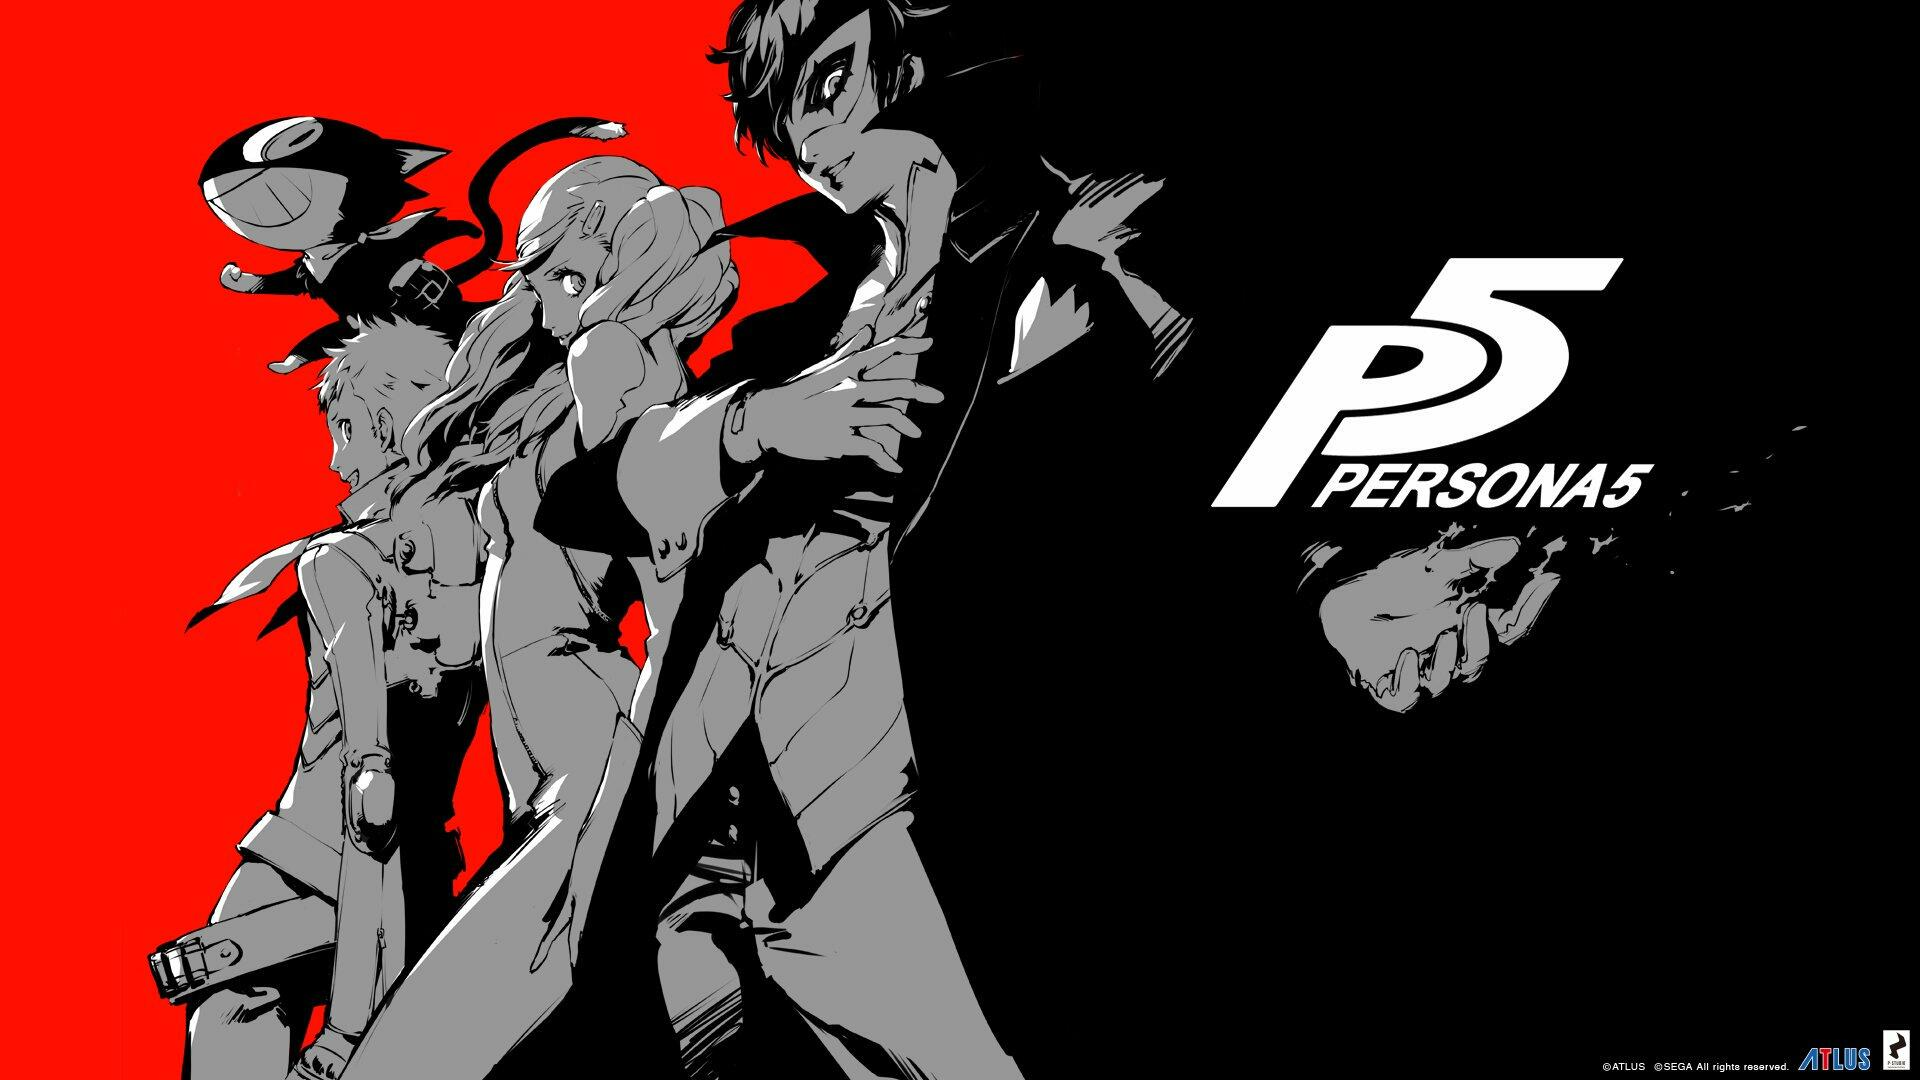 Persona 5 Confidant Guide - How to Max Out Your Social Links | USgamer